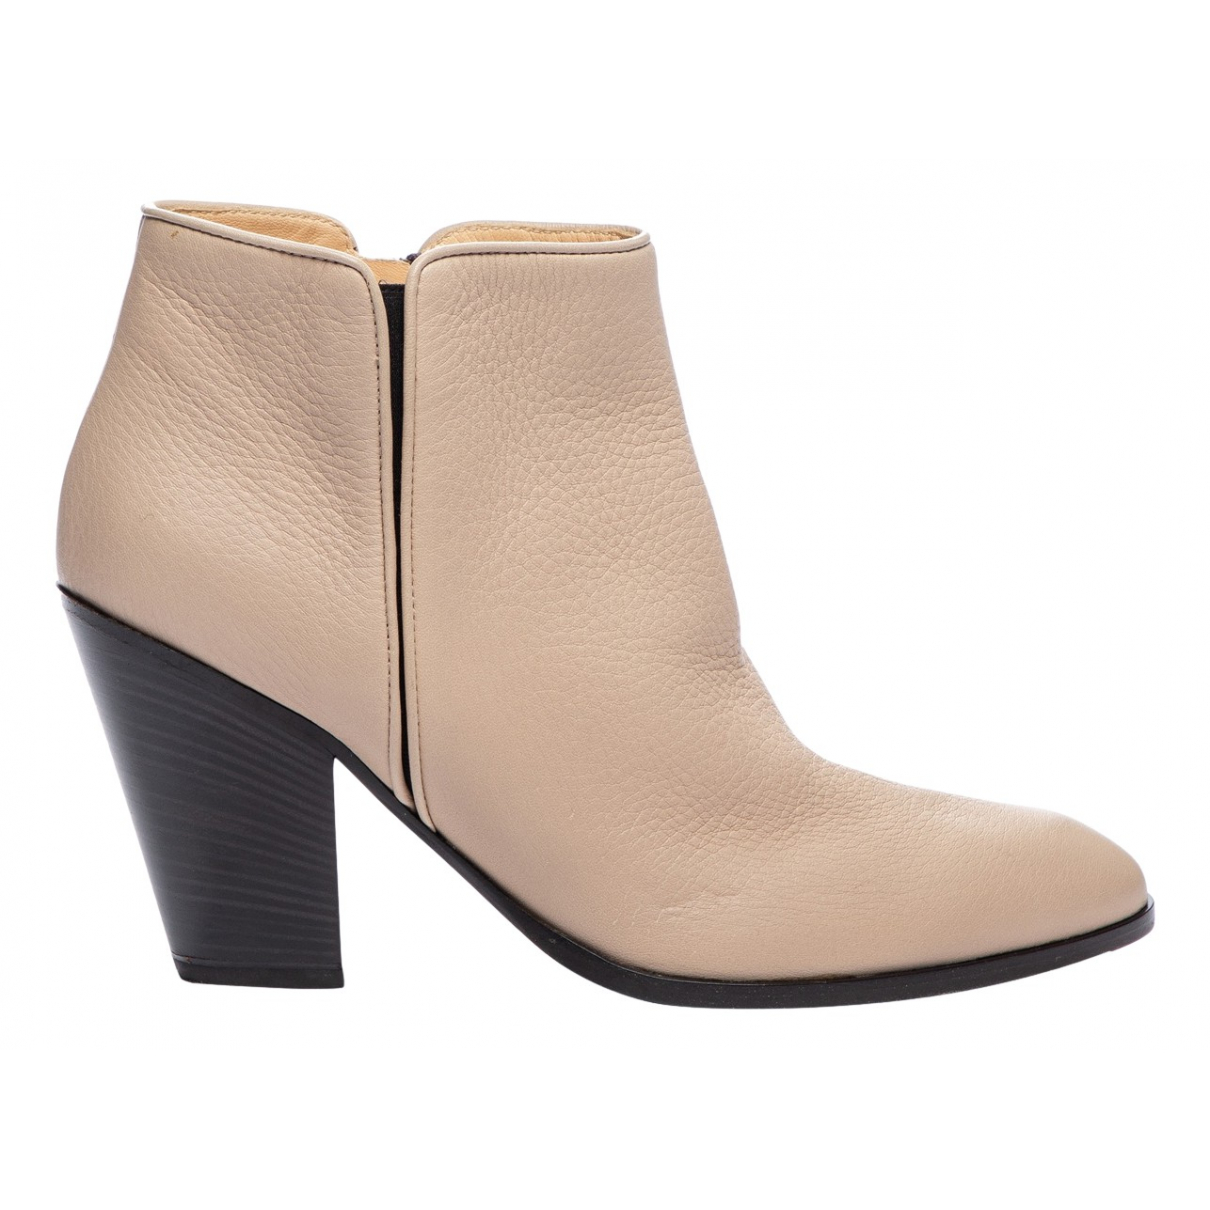 Giuseppe Zanotti \N Beige Leather Ankle boots for Women 39 EU